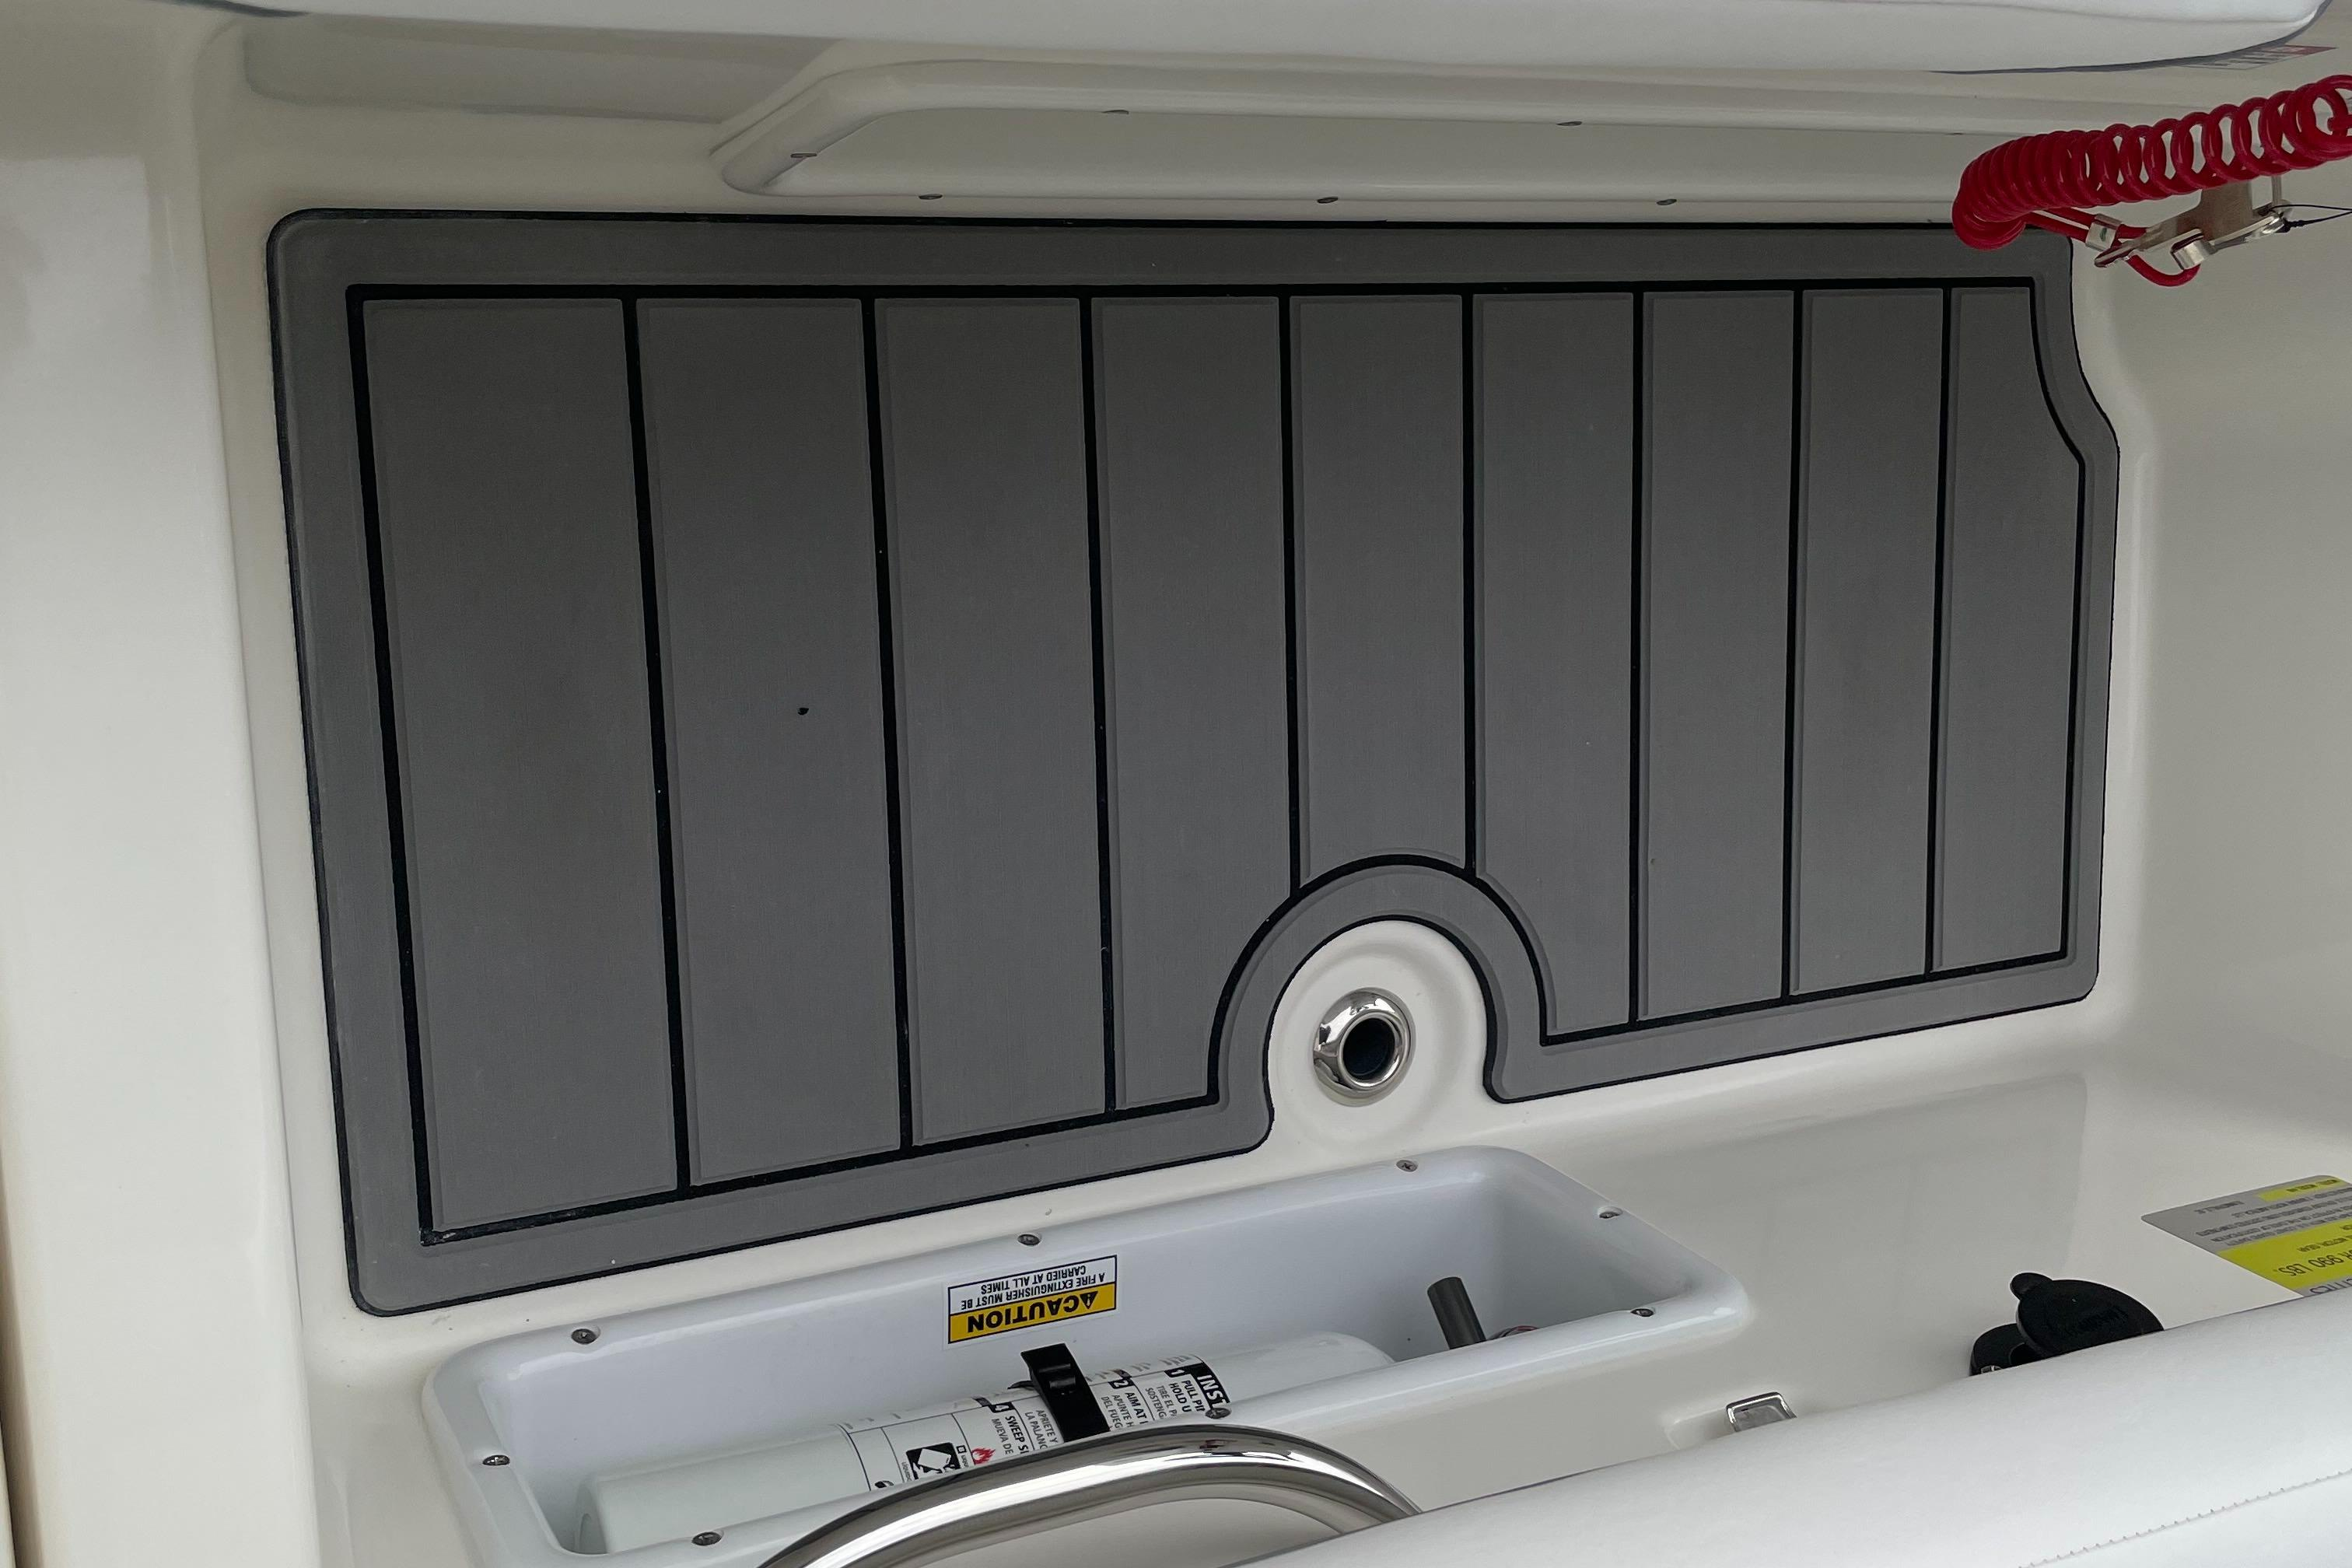 2022 Zodiac Yachtline 440 Deluxe NEO GL Edition 60hp On Order, Image 21